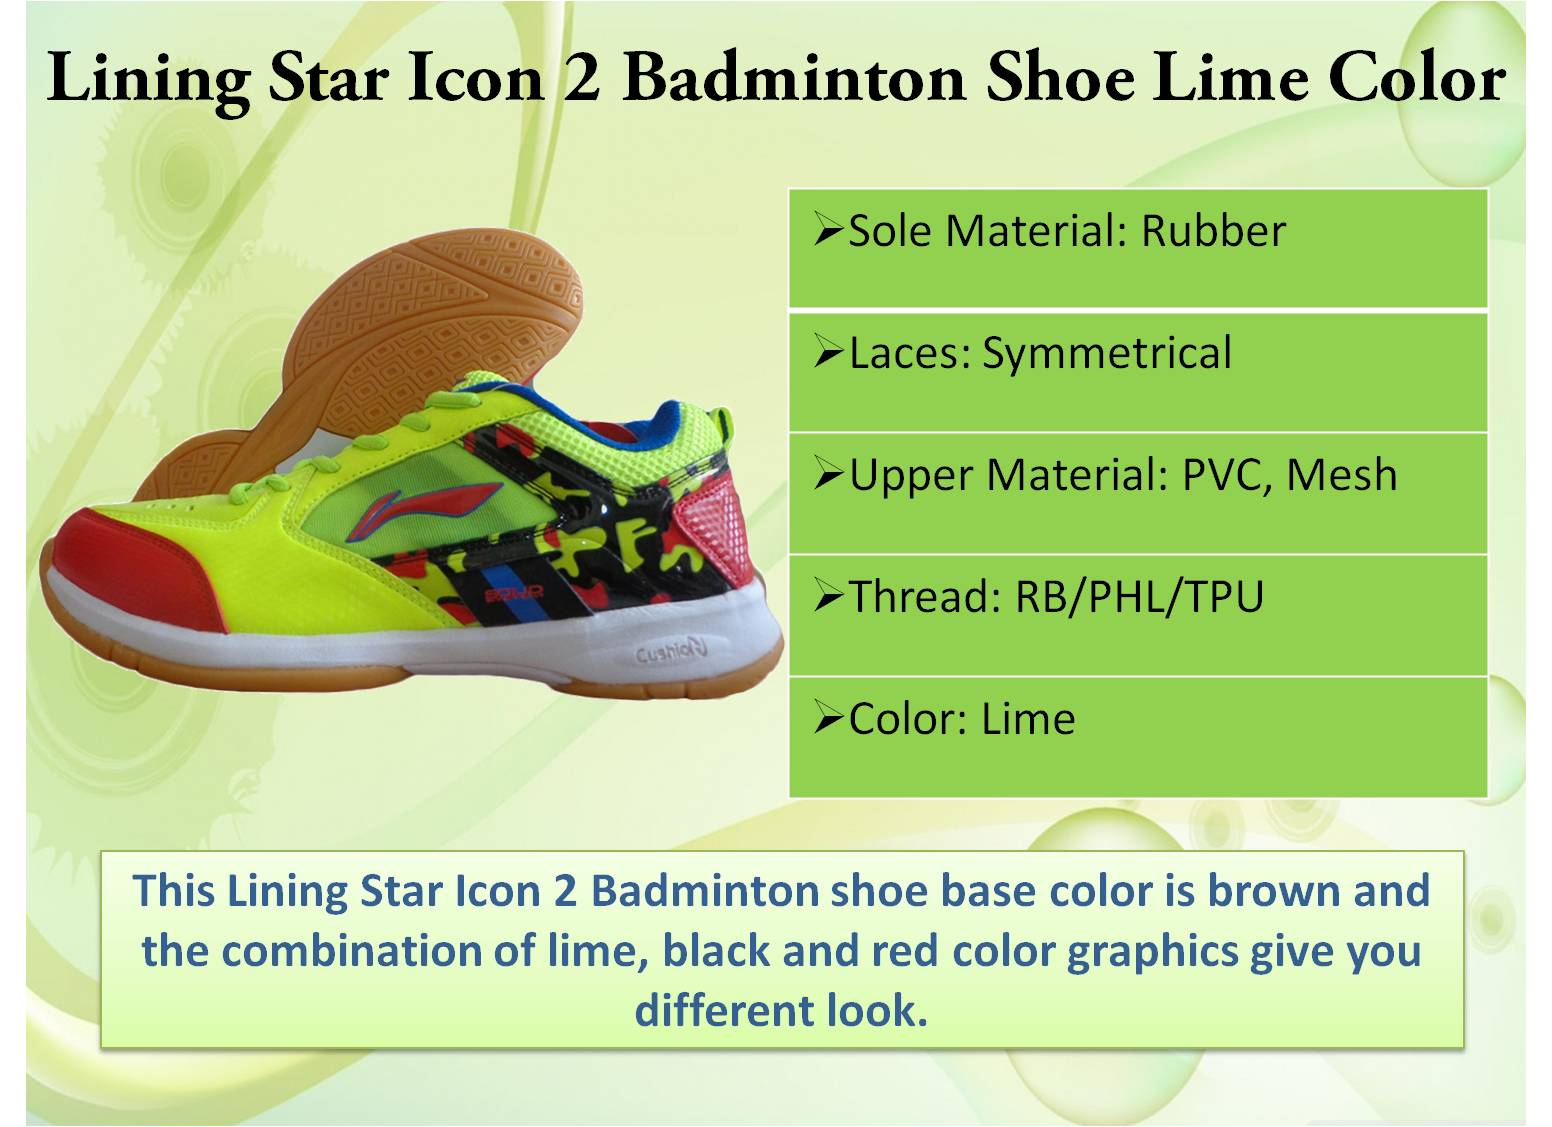 Lining star icon 2 badminton shoe in Lime color